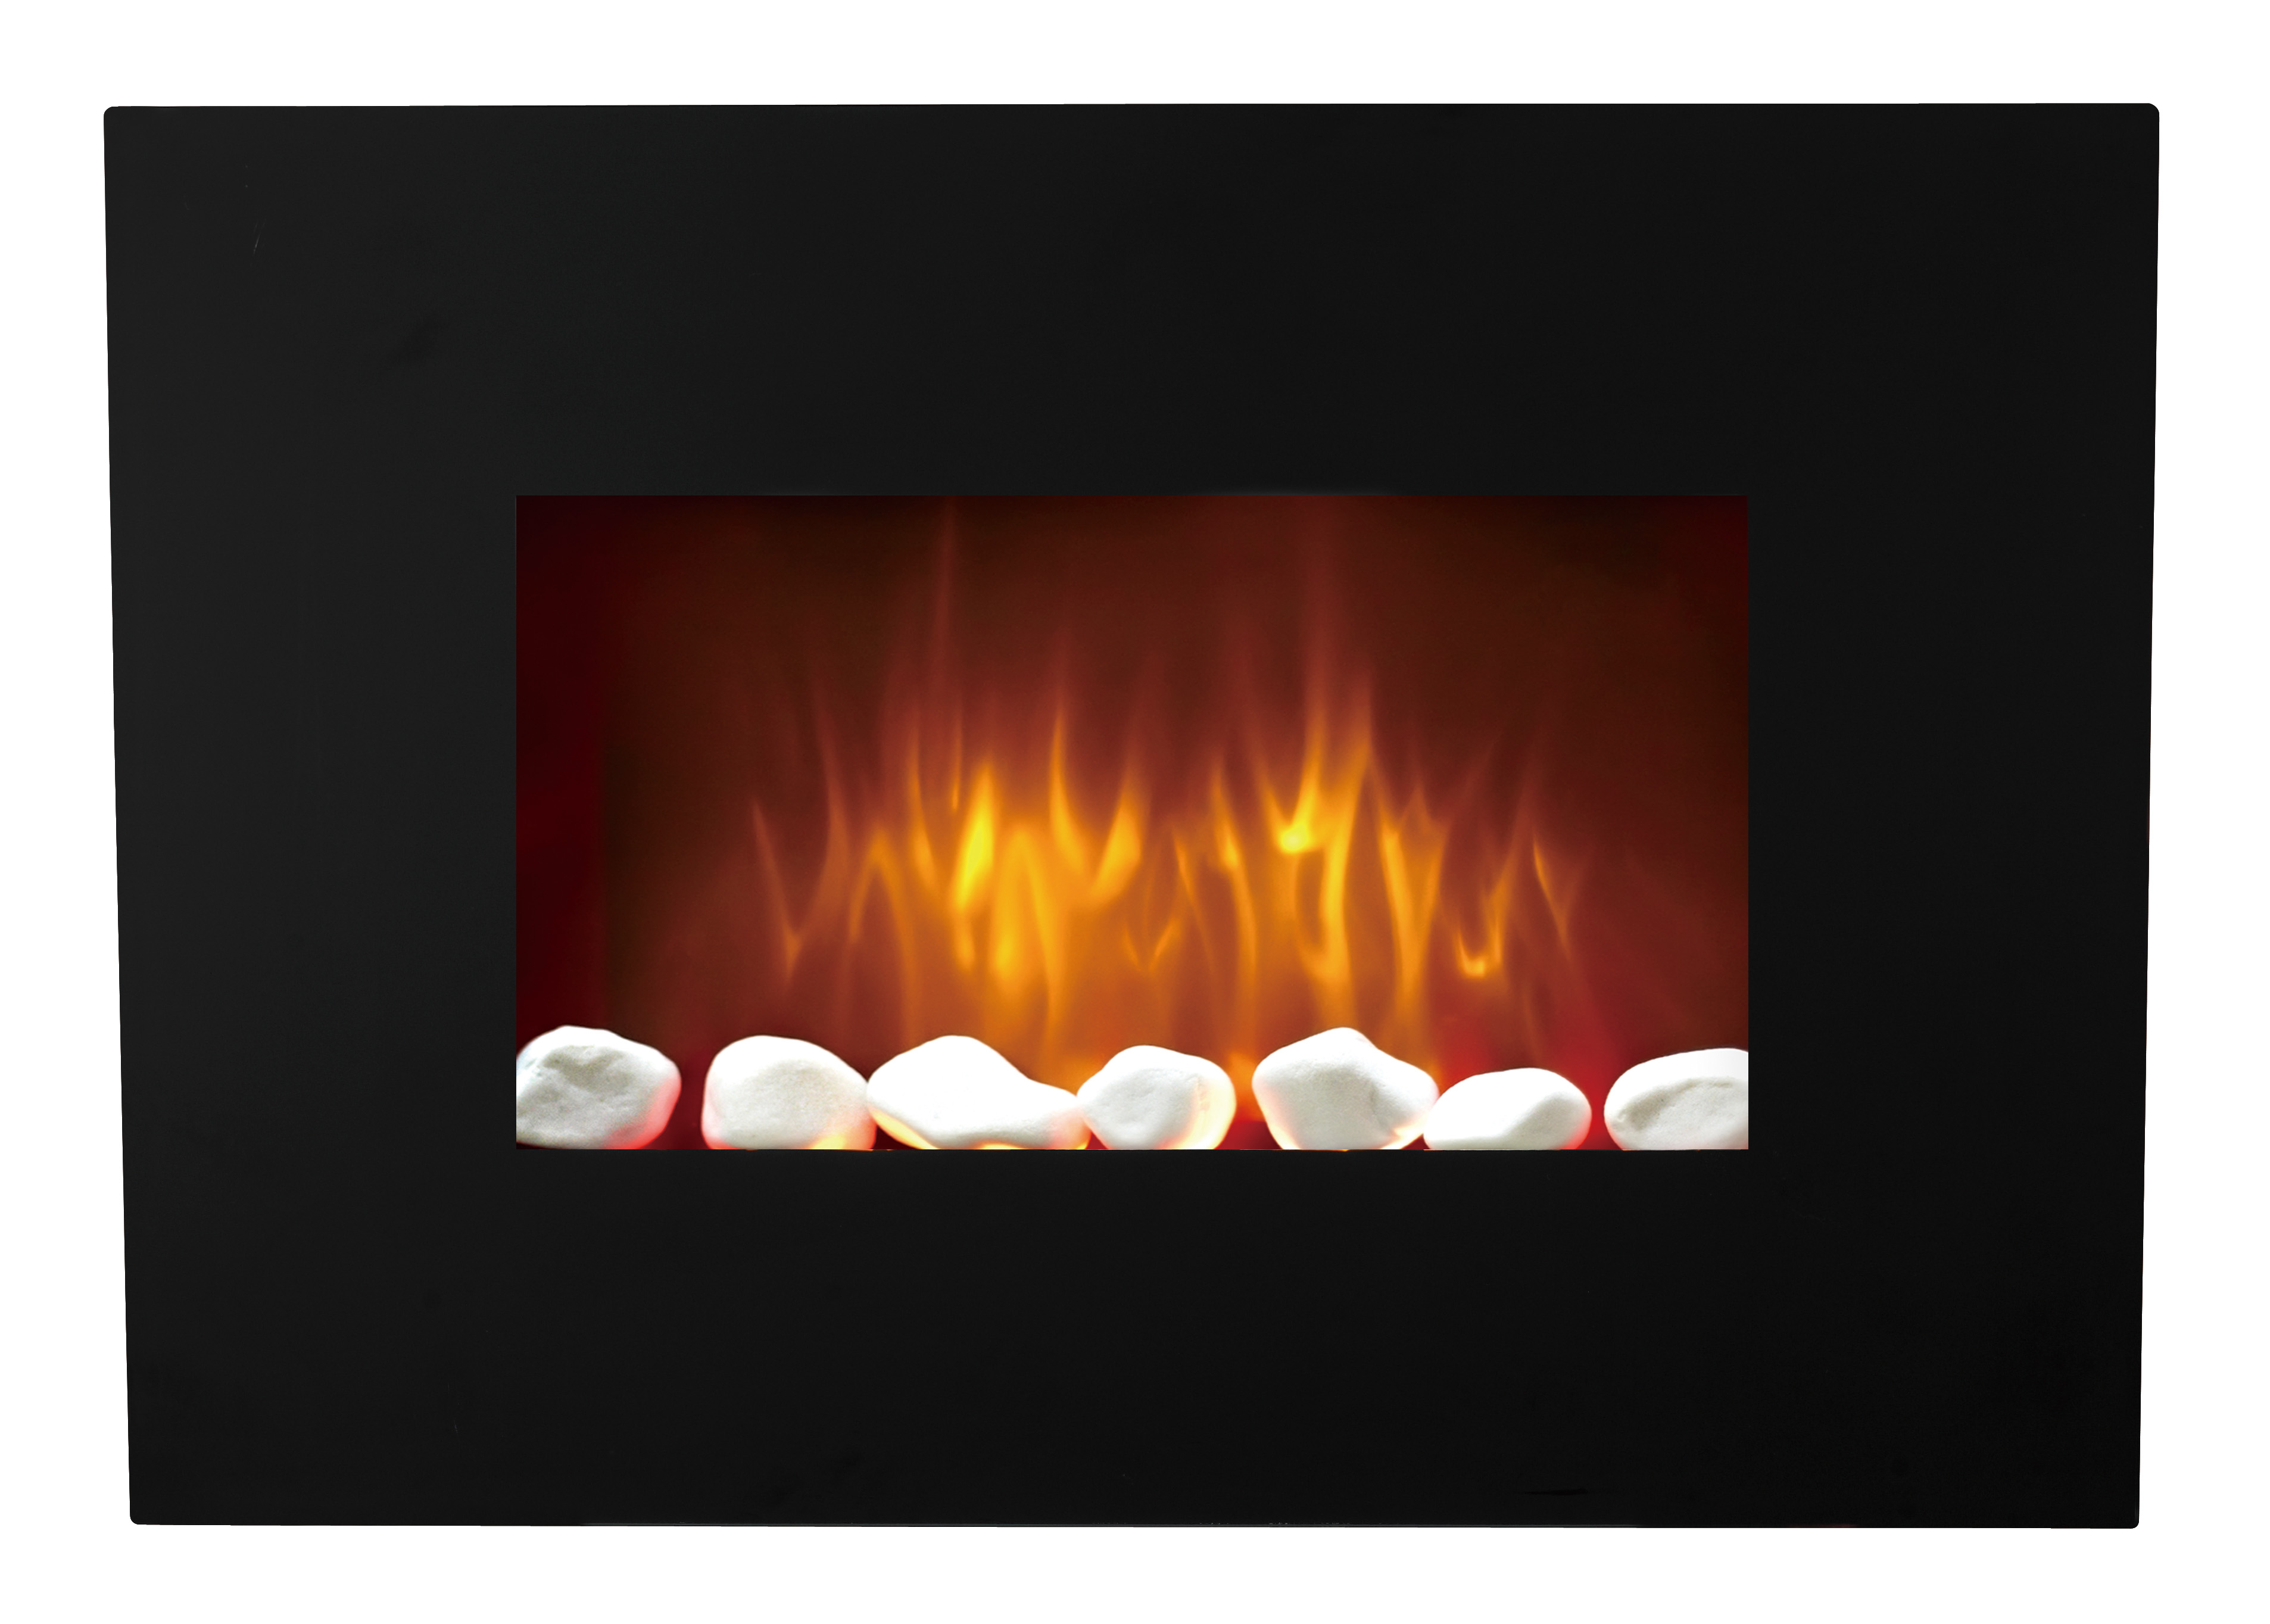 "LJHF2302BE 23"" Wall mounted electric fireplace, wall hung electric fire with LED"